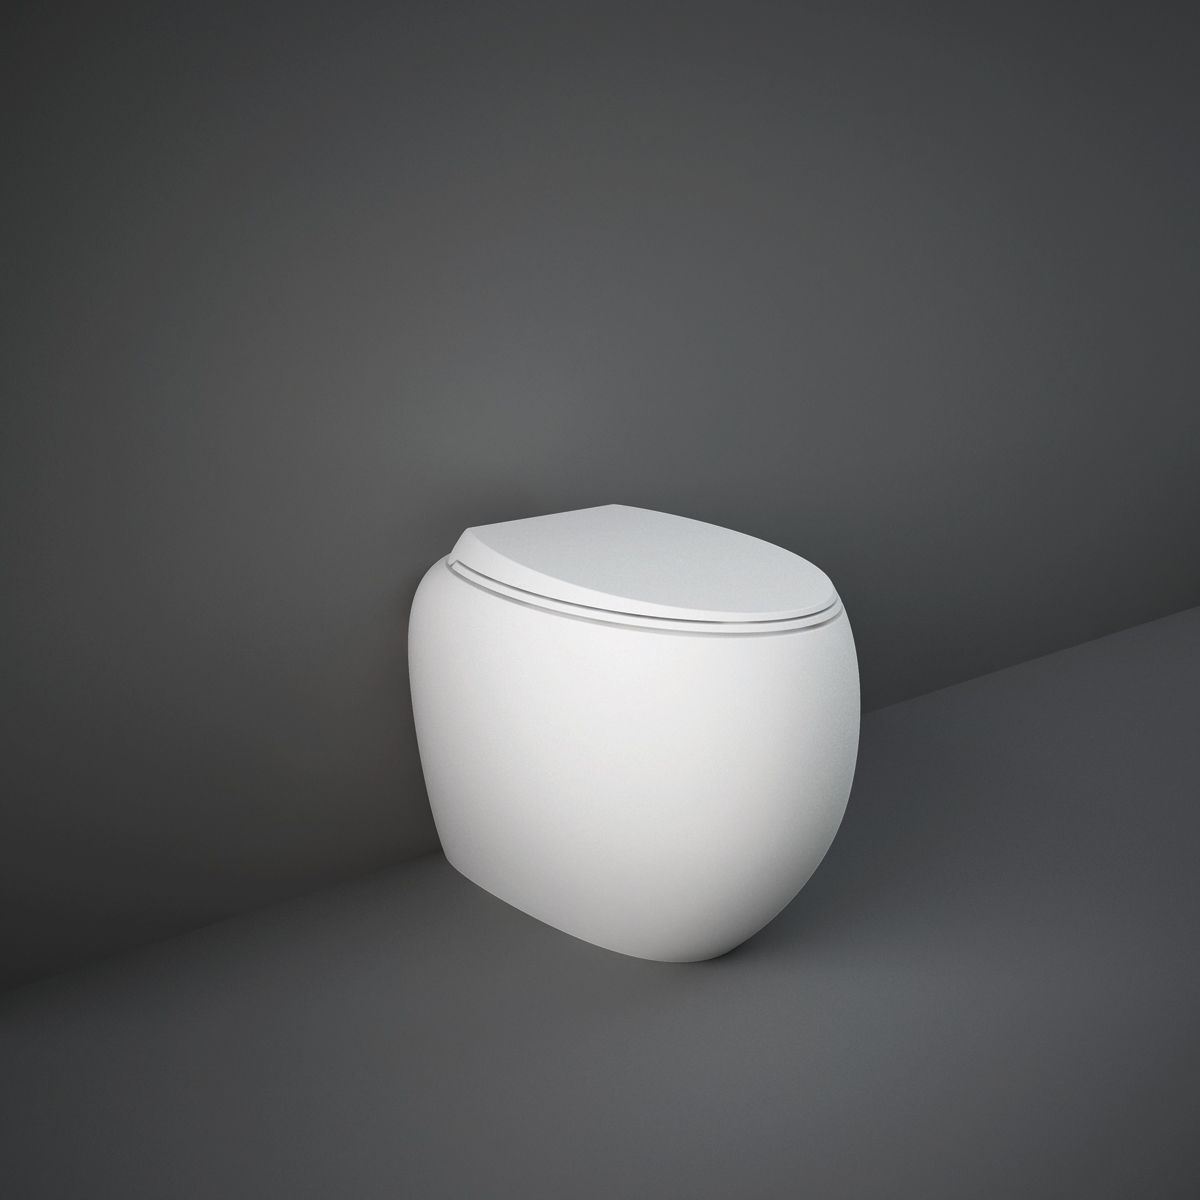 RAK Cloud Matt White Back To Wall Toilet with Soft Close Seat